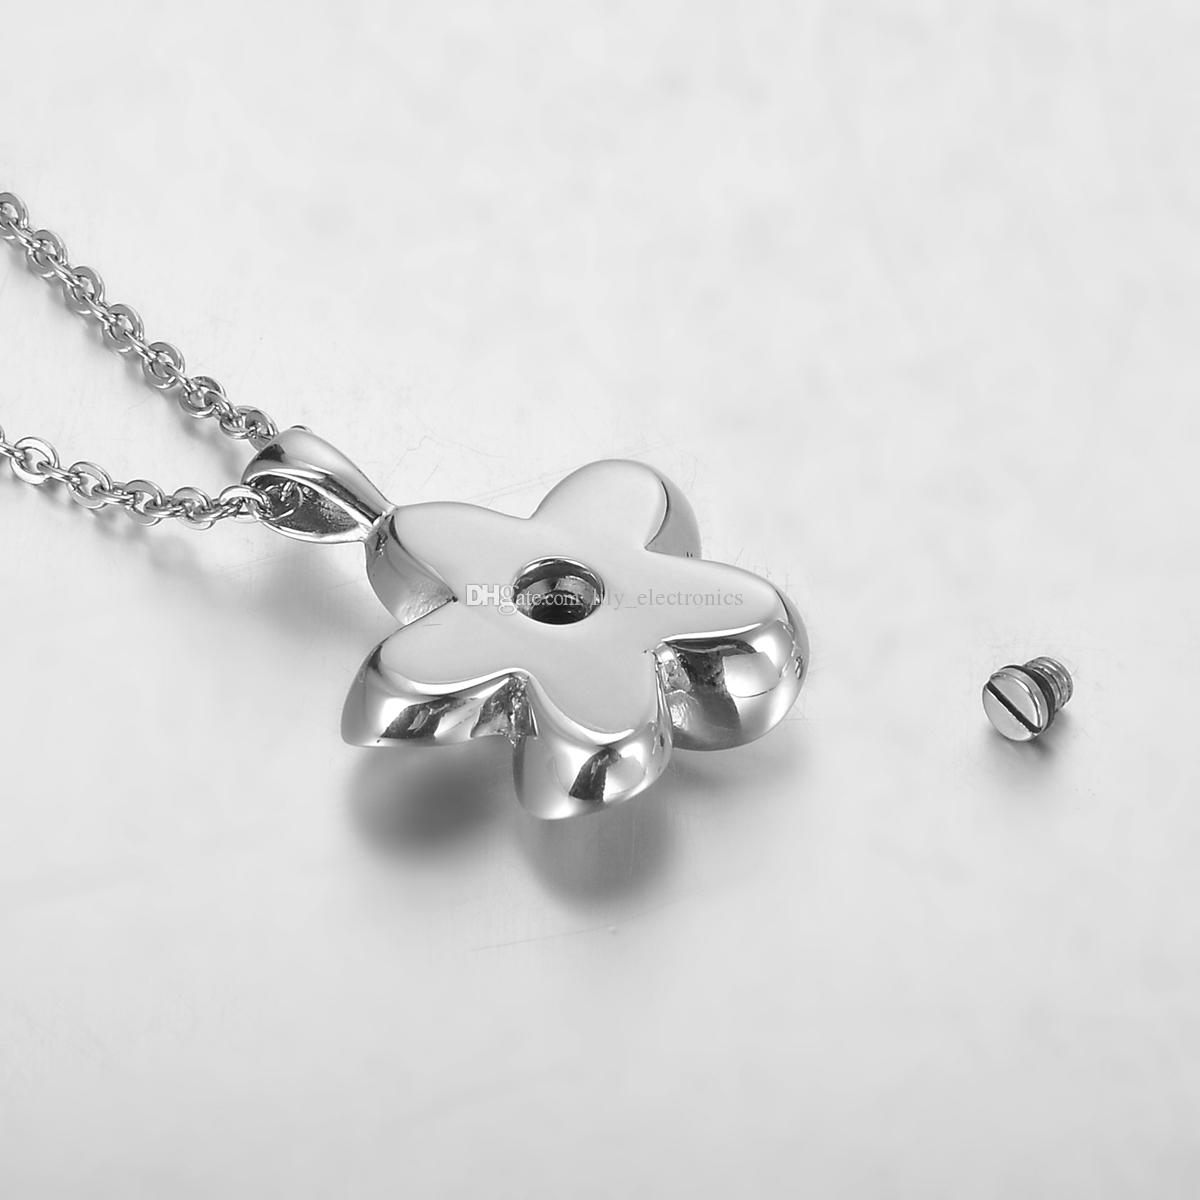 Lily Stainless Steel Petite Flower Remembrance Cremation Jewelry Ashes Pendant Keepsake Memorial Urn Necklace with Gift Bag And Chain